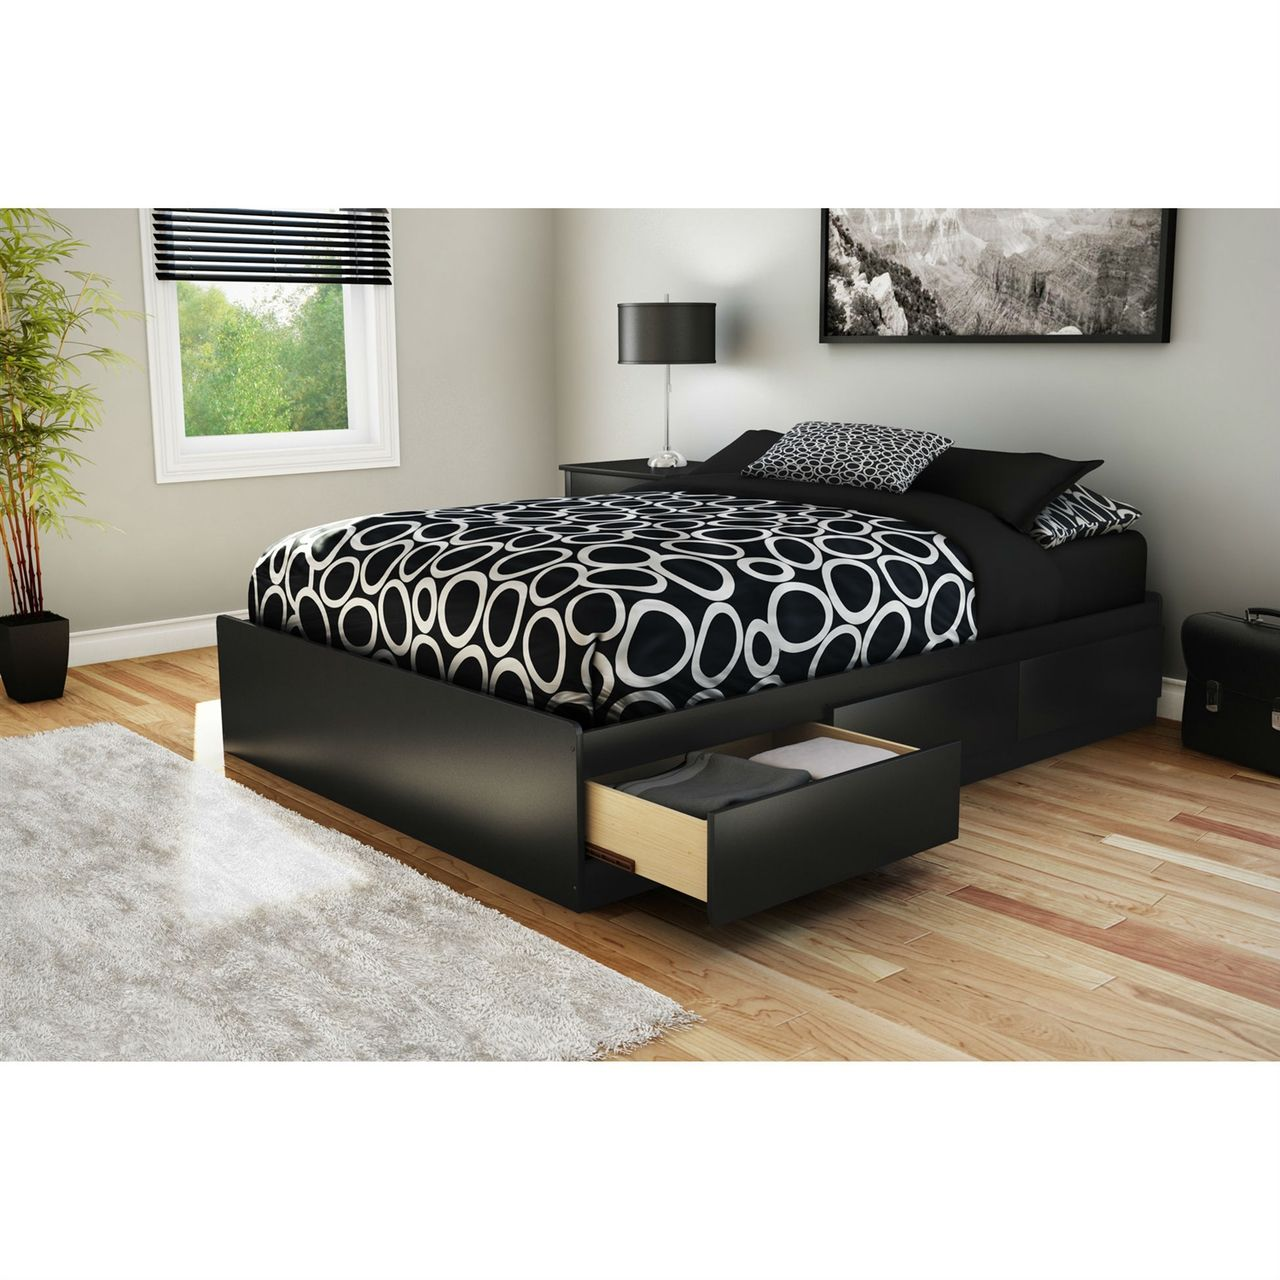 Full Modern Platform Bed With 3 Storage Drawers In Black Full